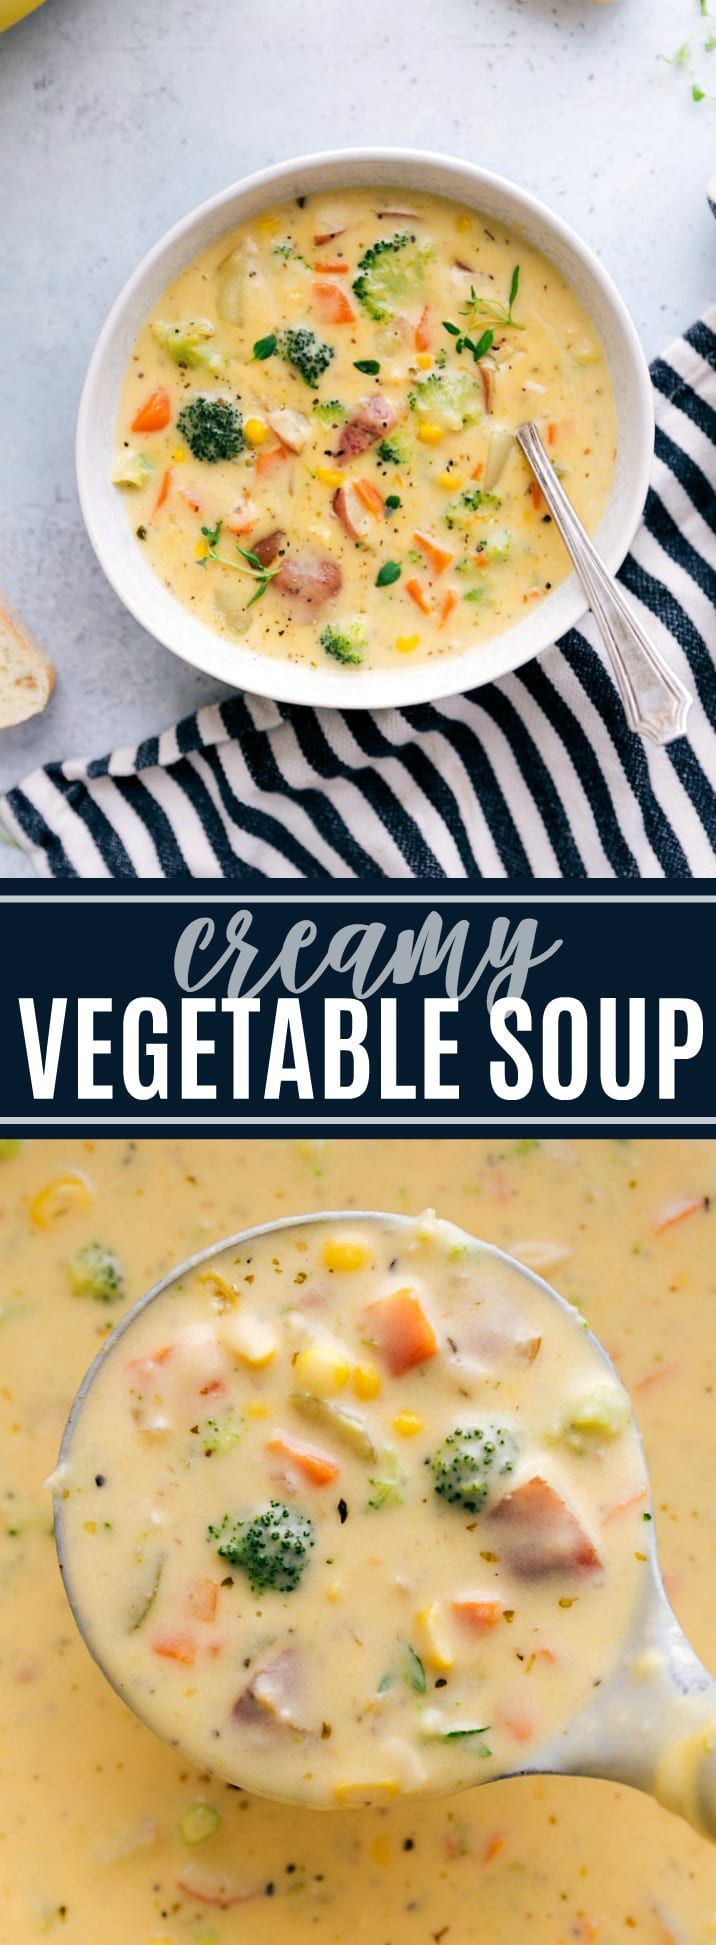 Creamy Vegetable Soup (So Much Flavor!) | Chelsea's Messy Apron